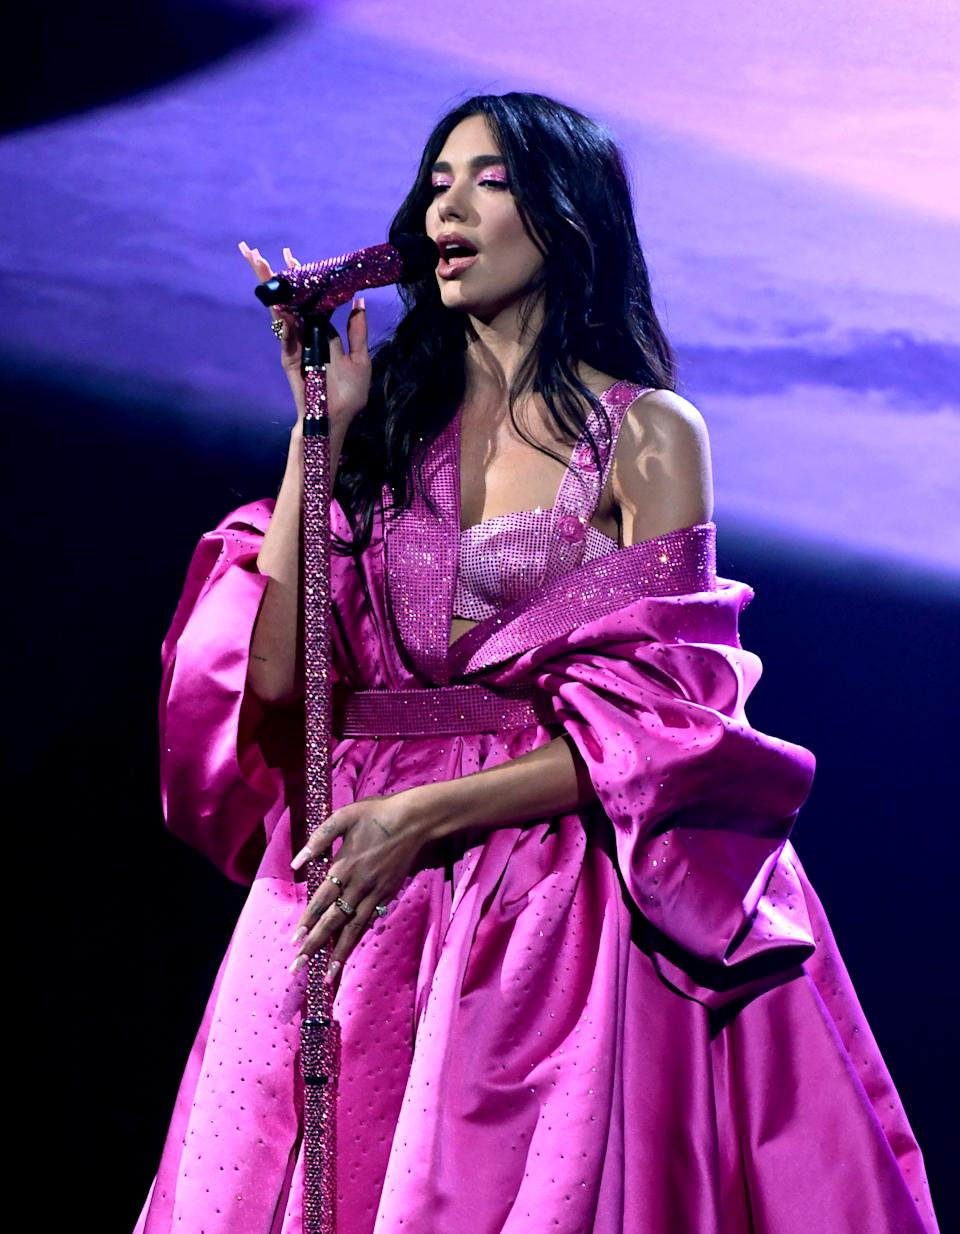 Dua Lipa is nominated at the Brit Awards 2021 and will also perform. (Photo by Kevin Winter/Getty Images for The Recording Academy)